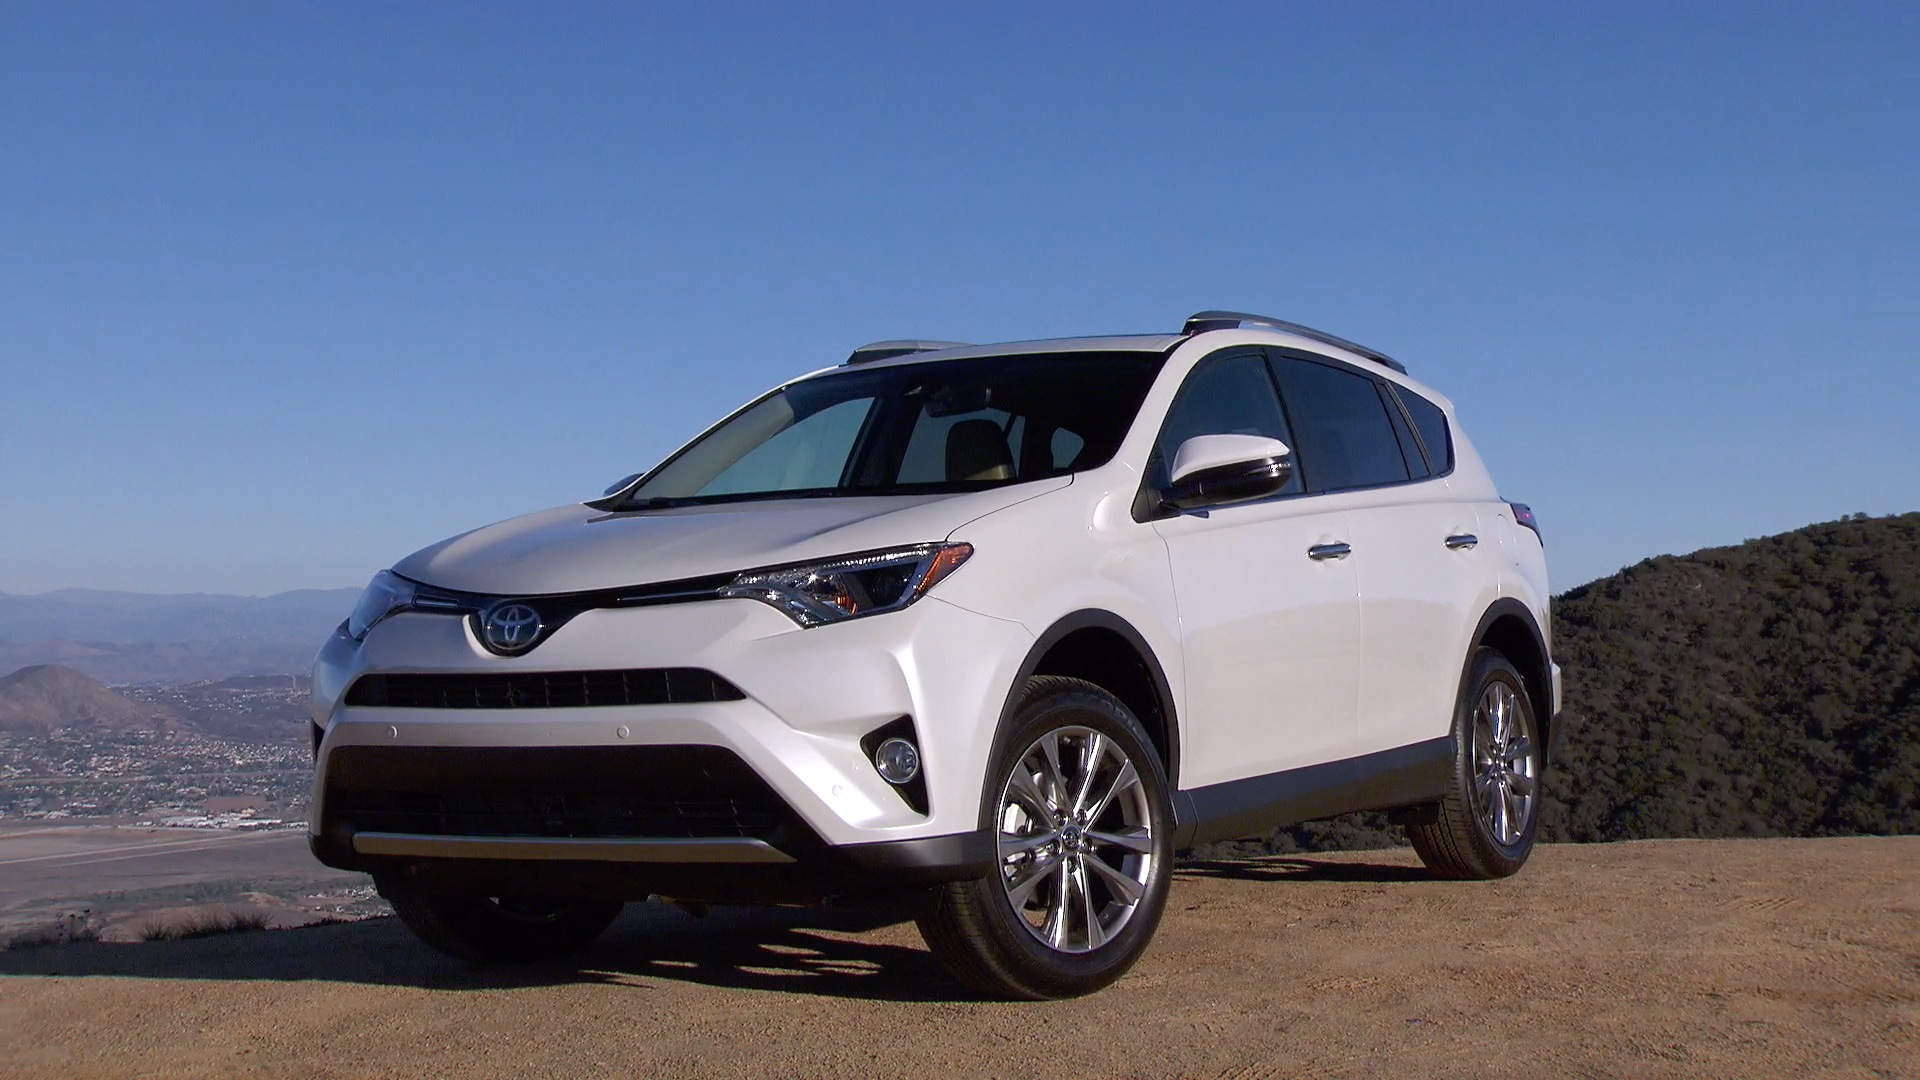 USA TODAY autos reporter Chris Woodyard takes a look at Toyota's 2016 RAV4 Hybrid.